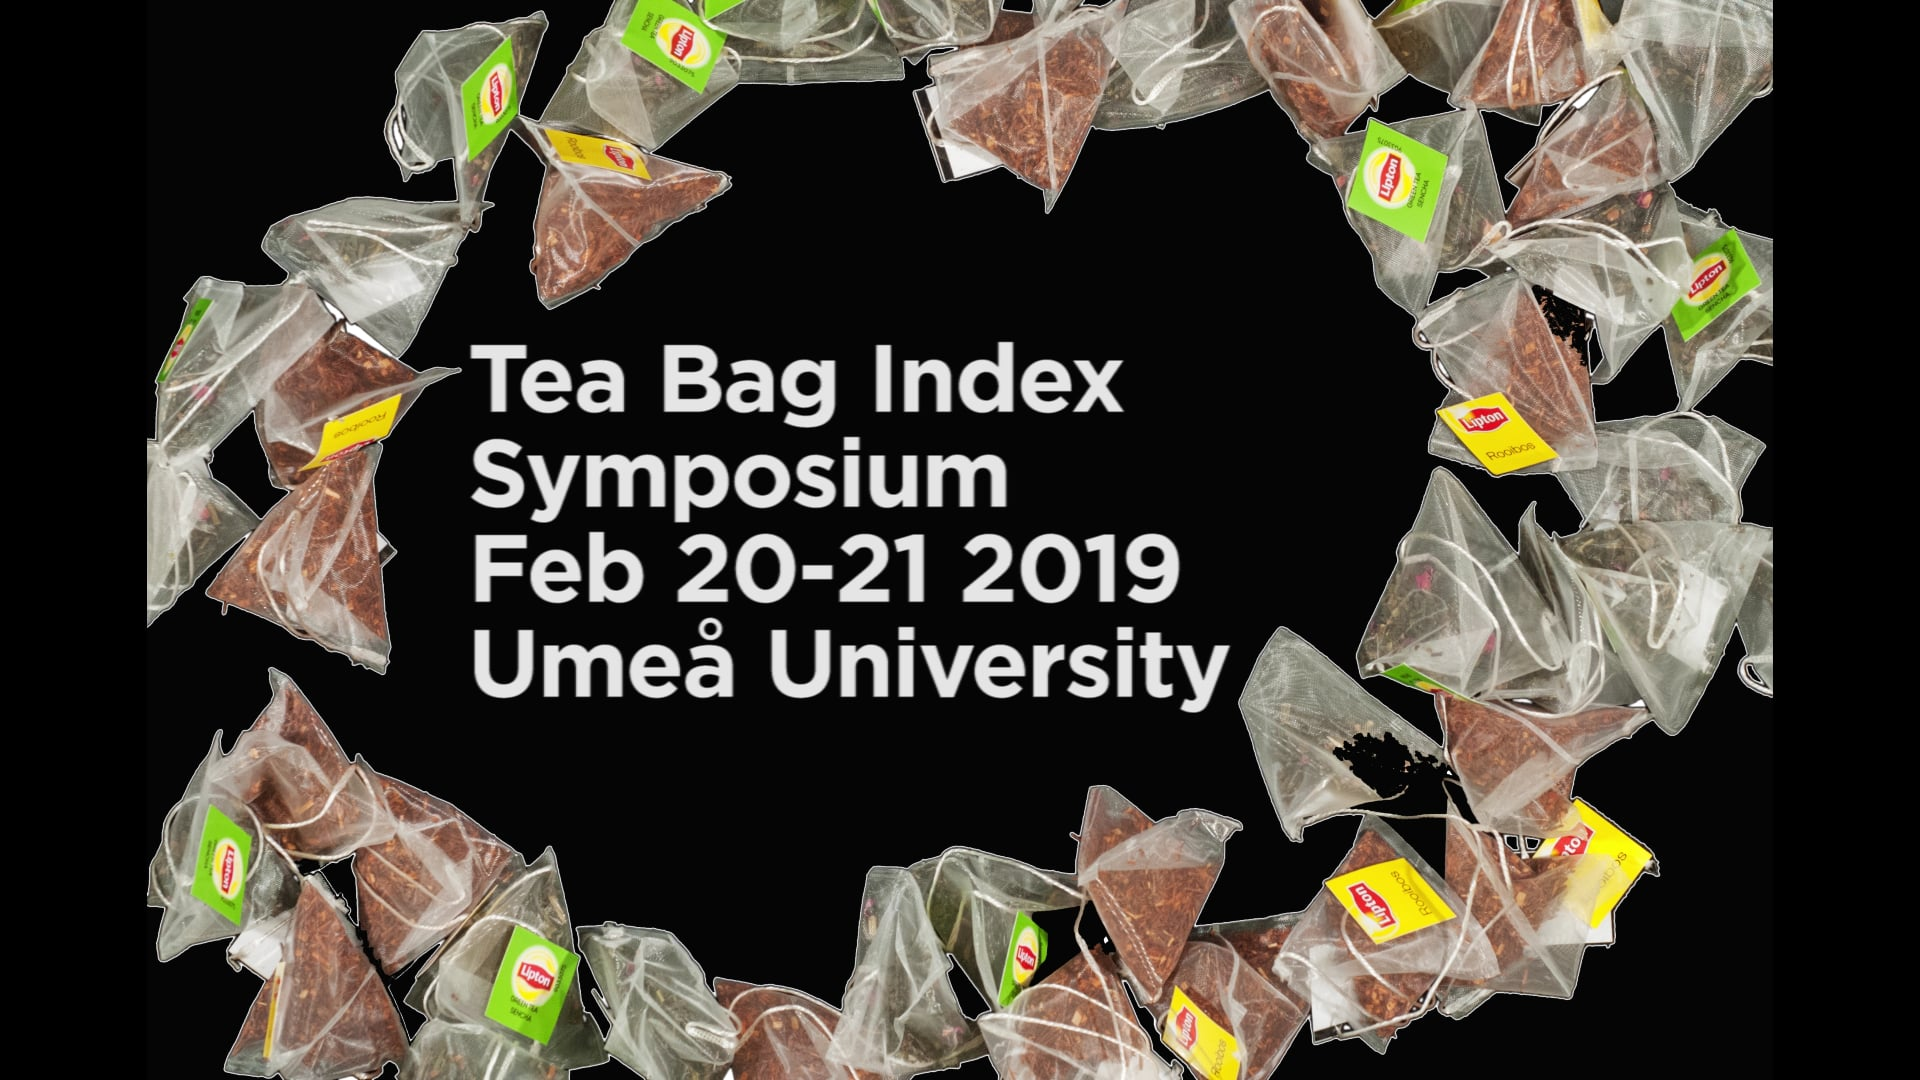 Film: Tea-time for scientists